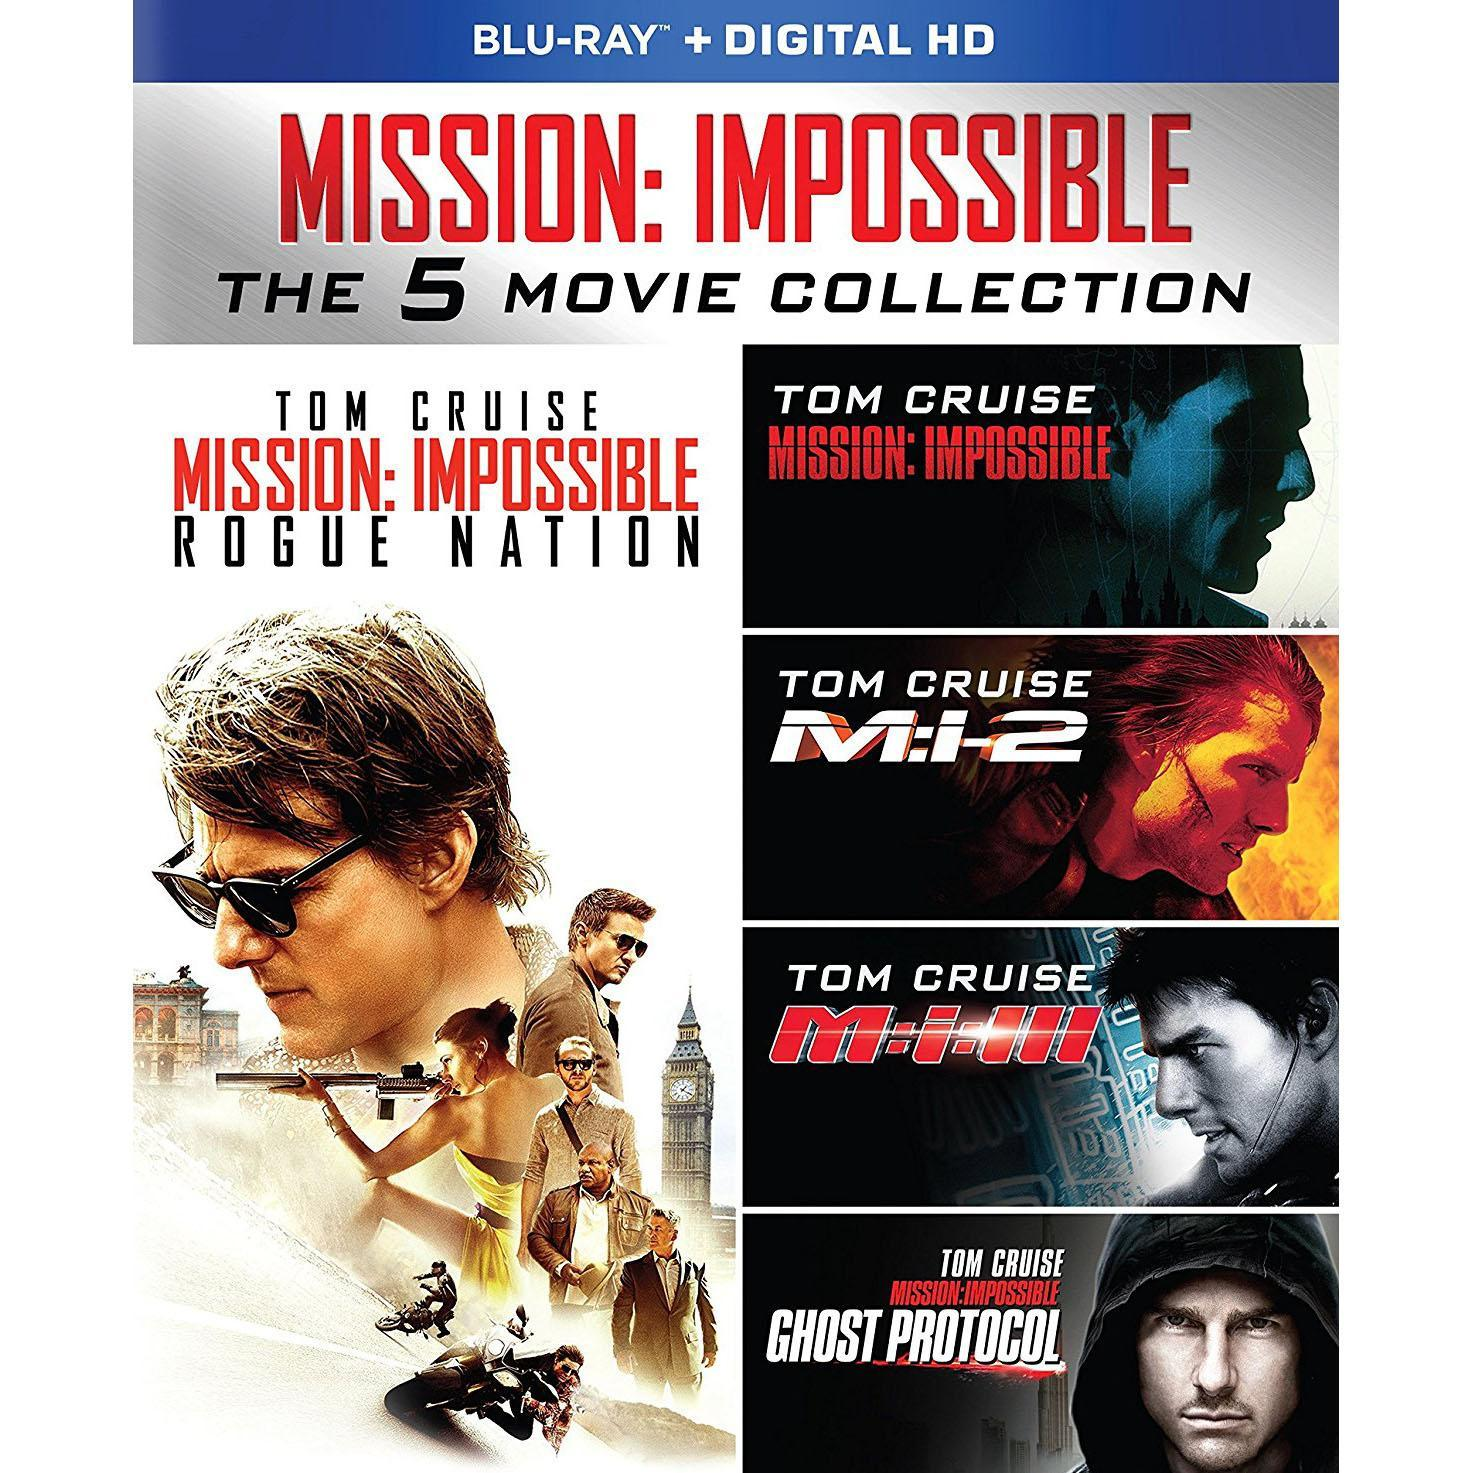 Mission Impossible 5 Movie Collection Blu-ray Set